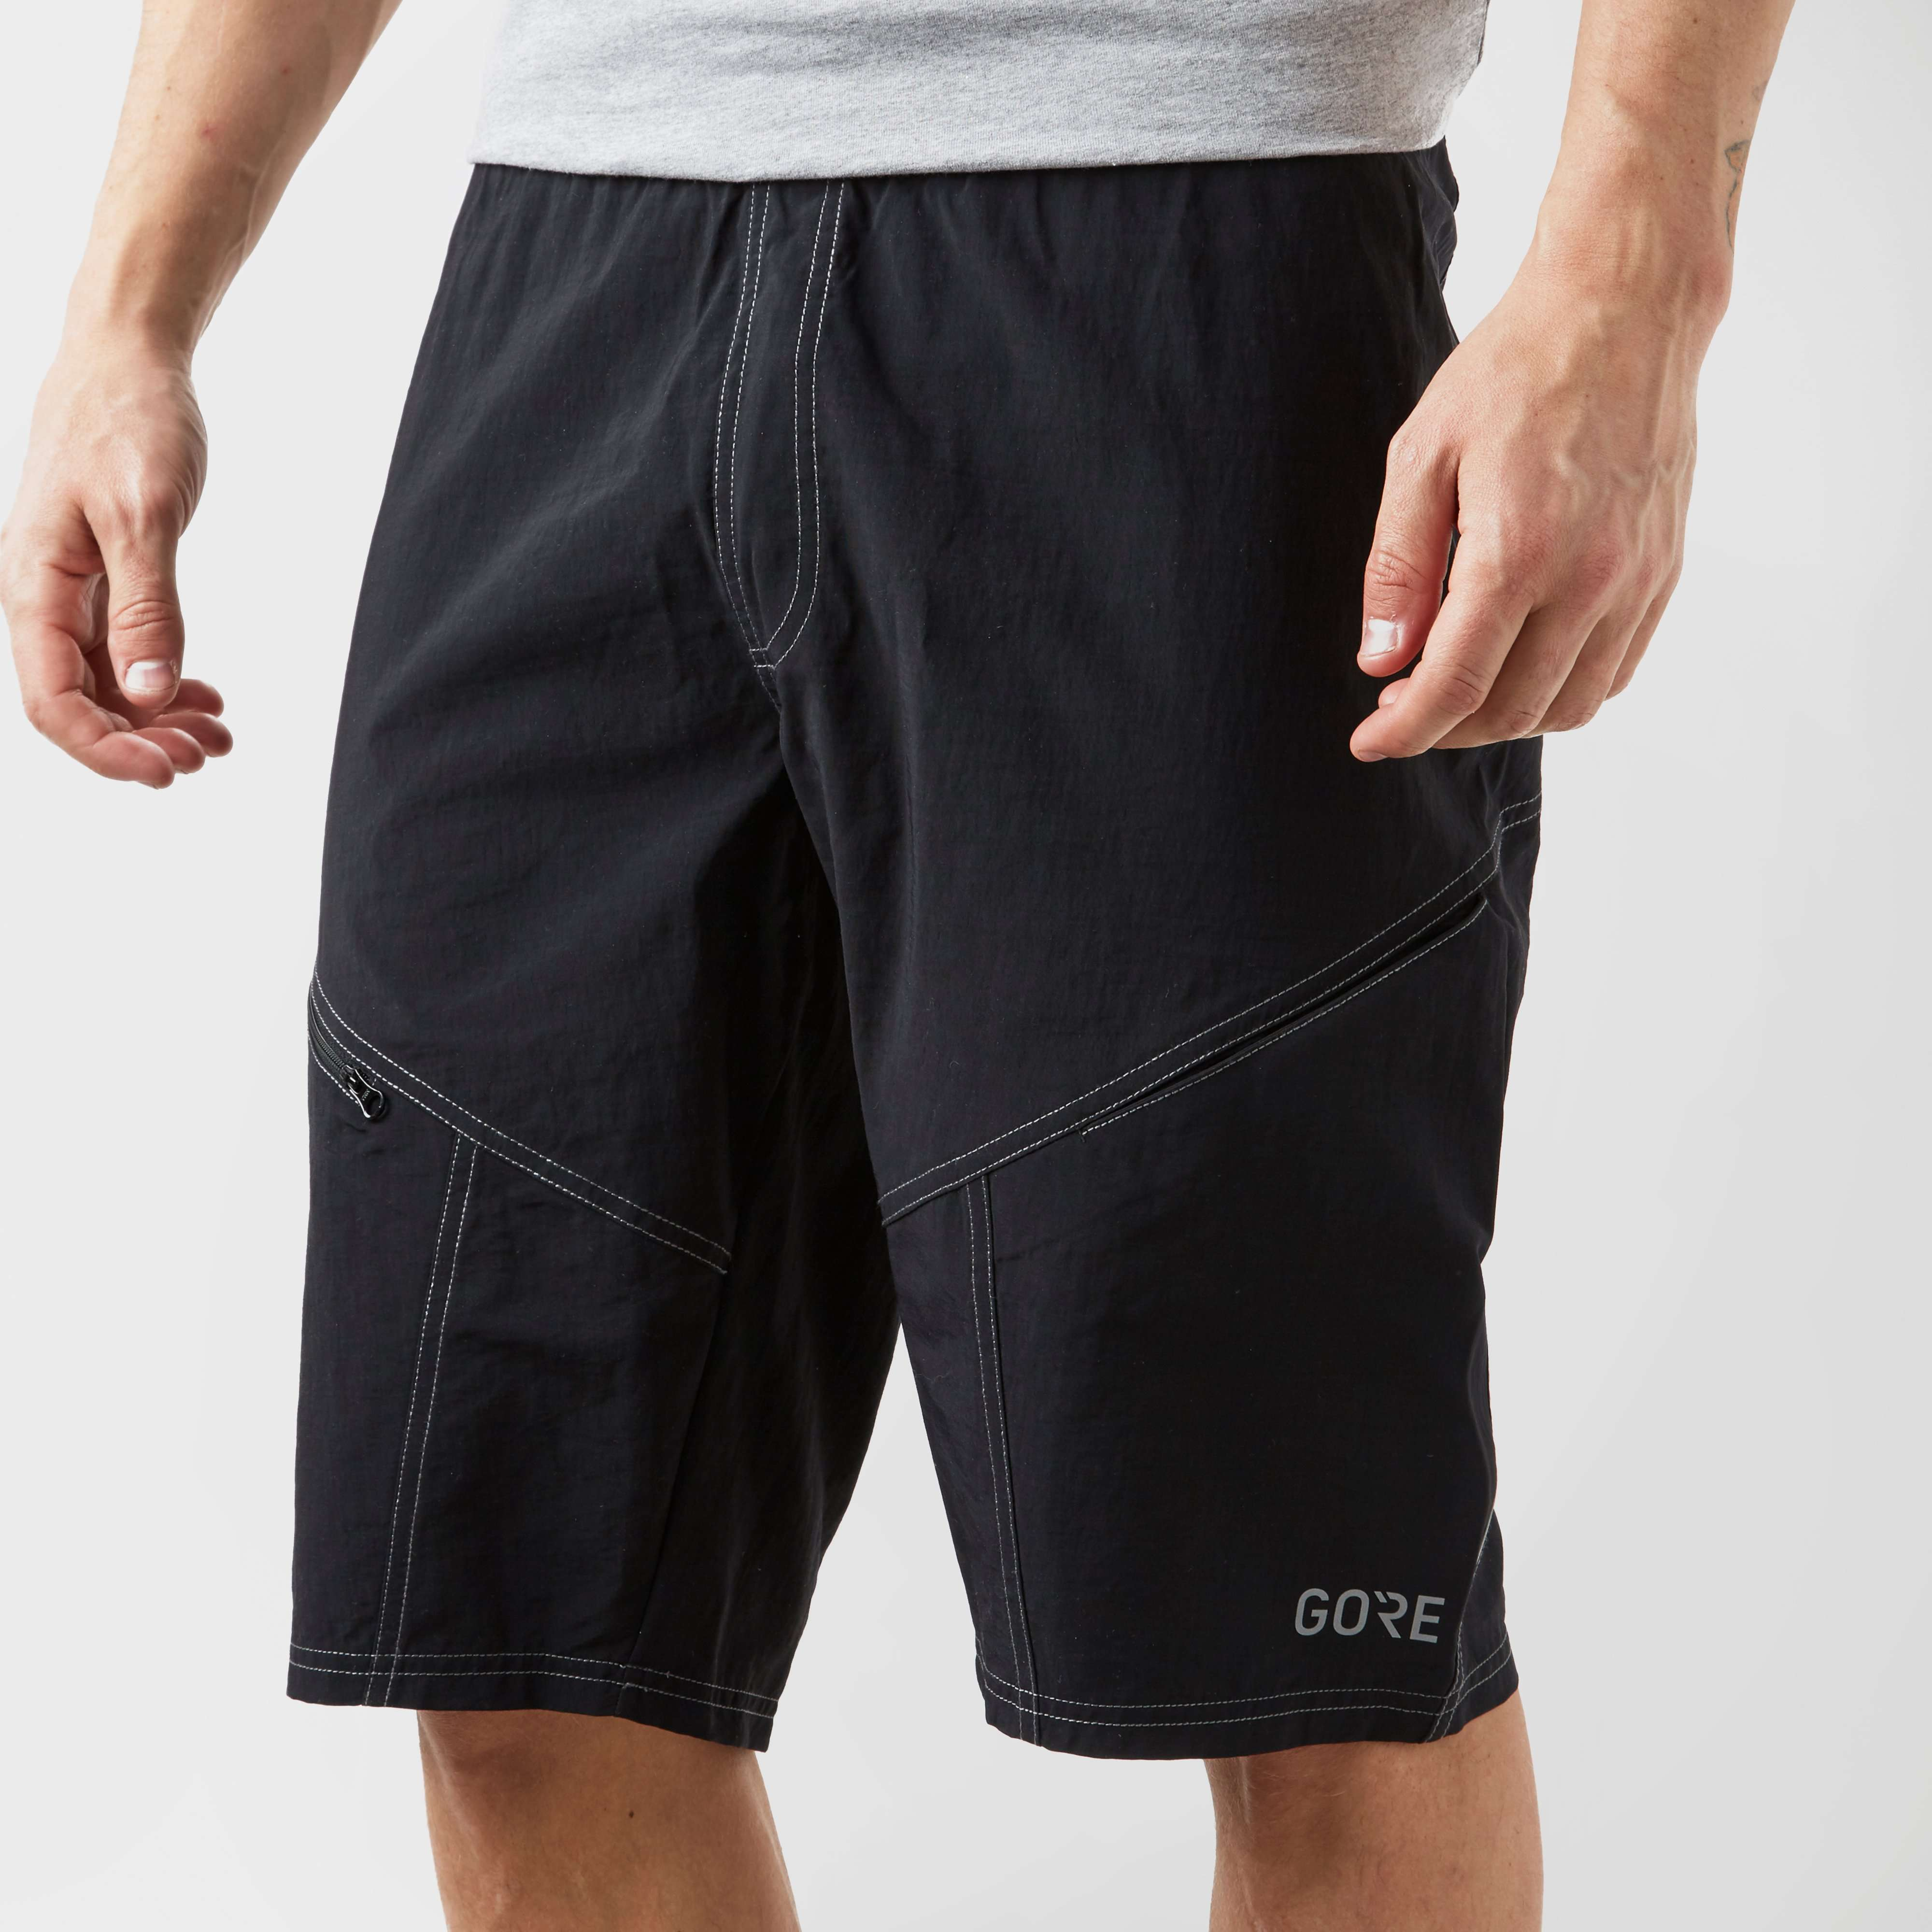 GORE Men's C3 Classic Cycling Shorts+